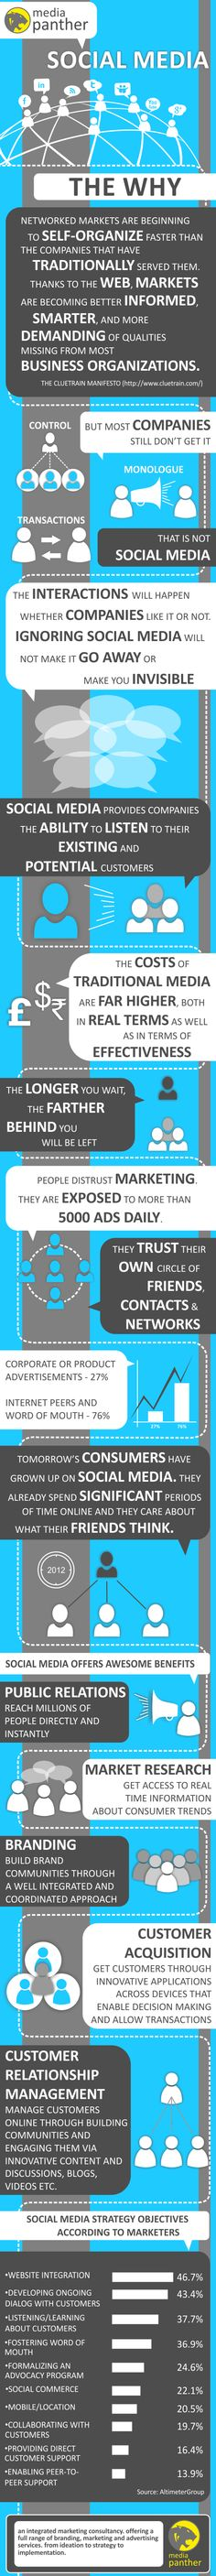 Social media - The why - Advertising, Branding, Marketing - Media Panther Blog #infographic (pinned by @lovile)